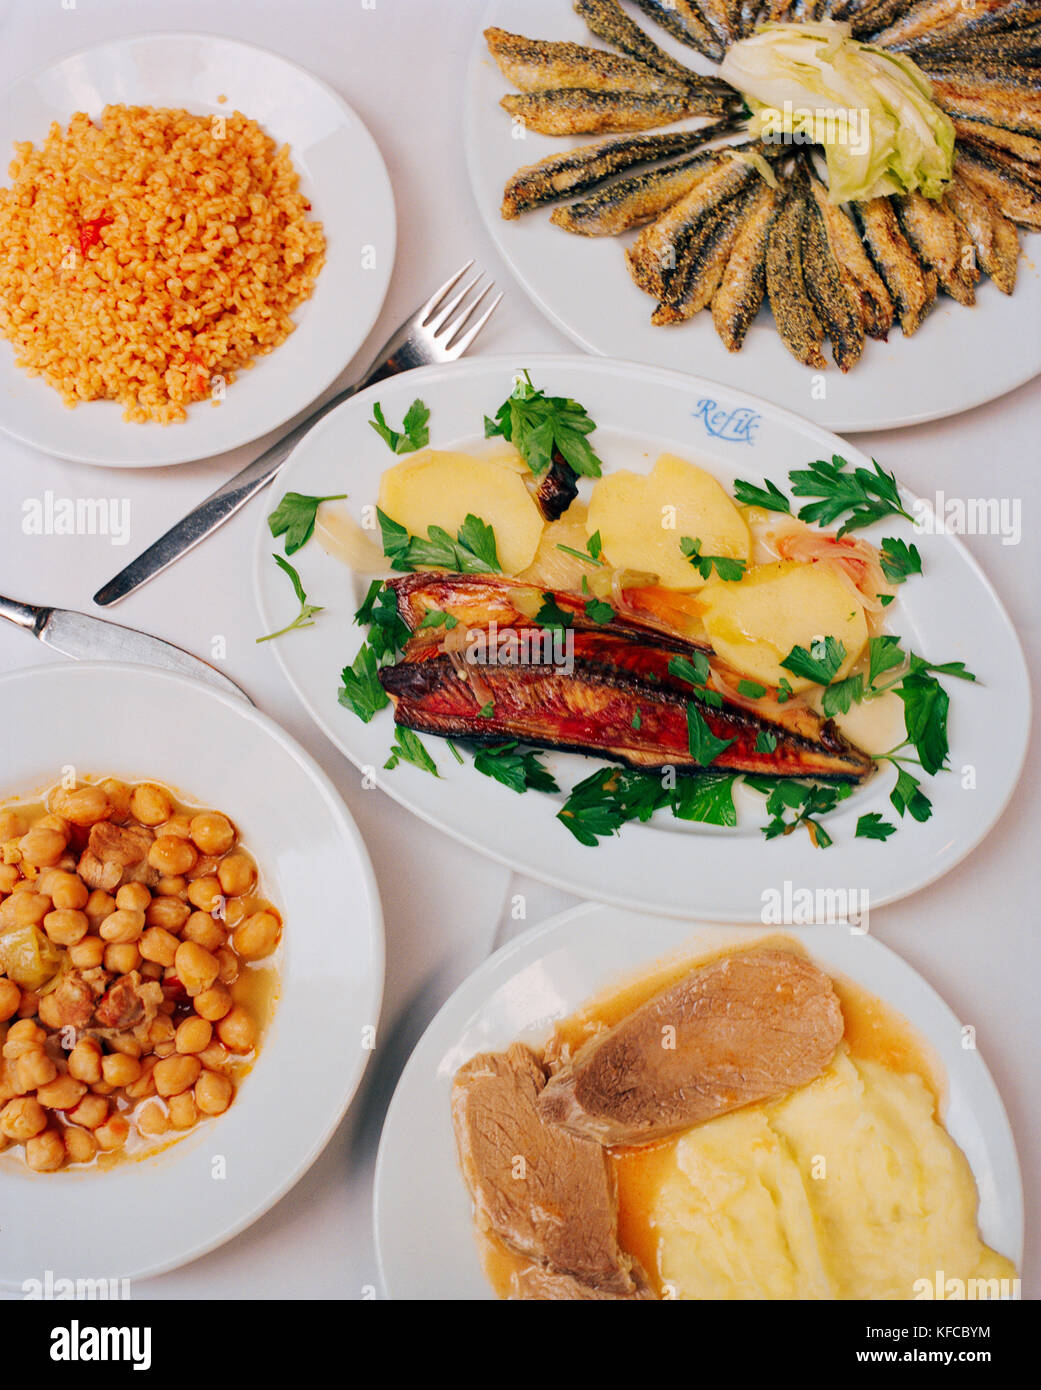 TURKEY, Istanbul; top view of Turkish cuisine served at Refik Restaurant. - Stock Image